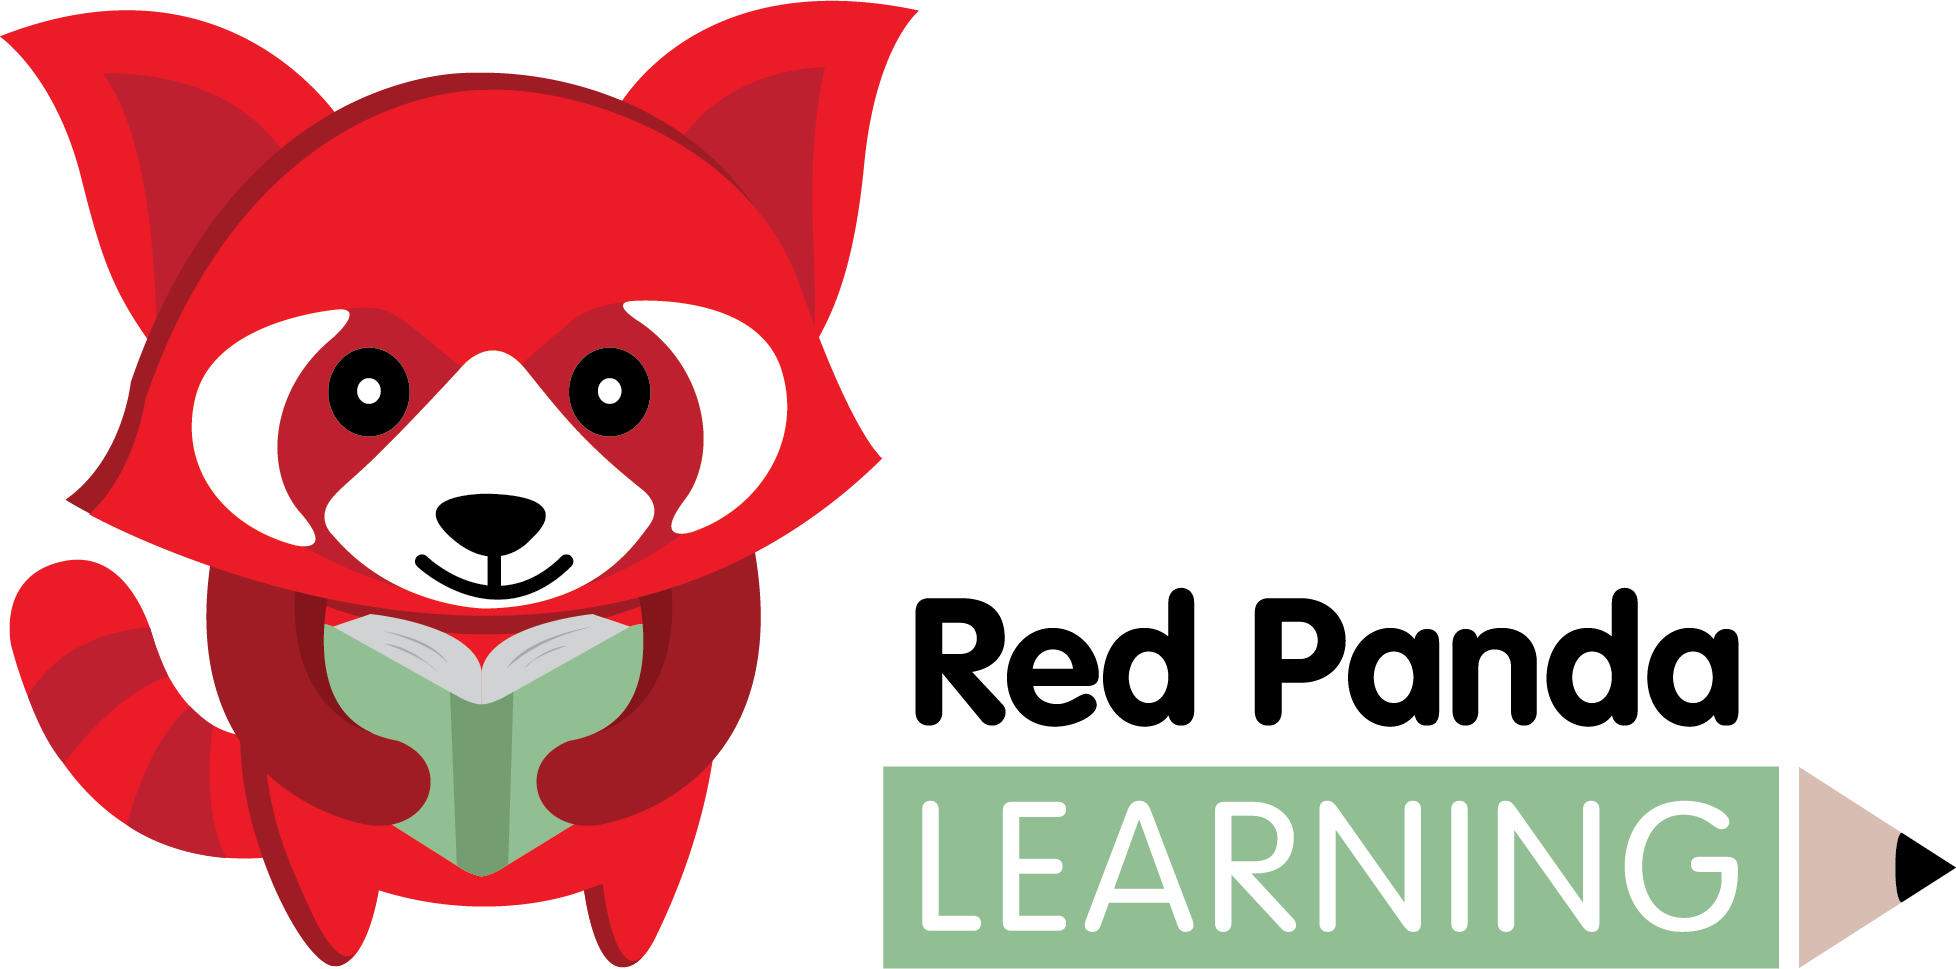 Red Panda Learning